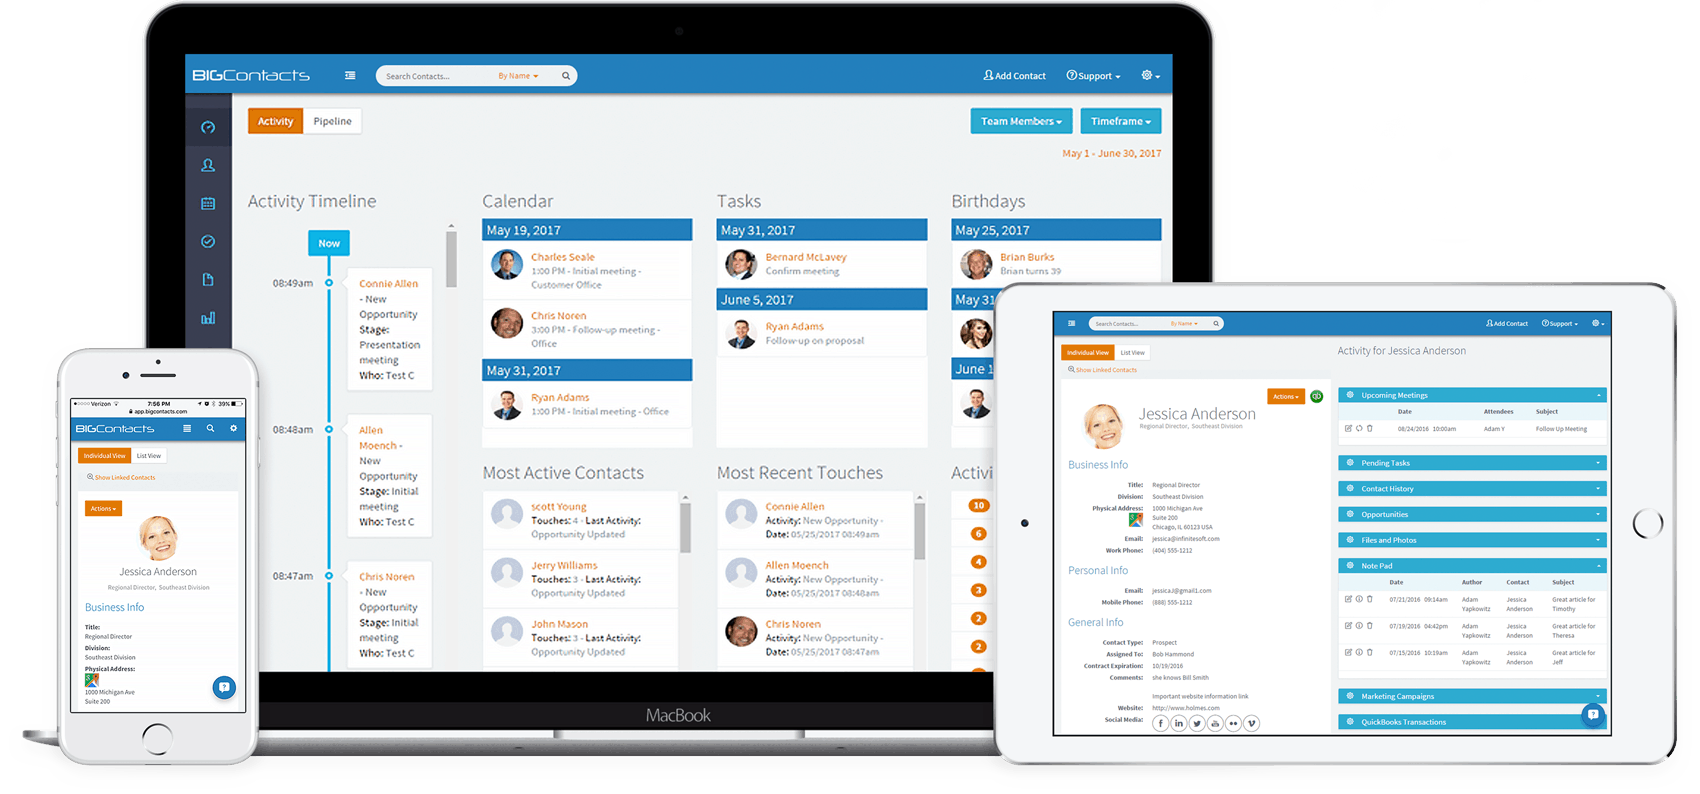 CRM for Small Business | BIGContacts